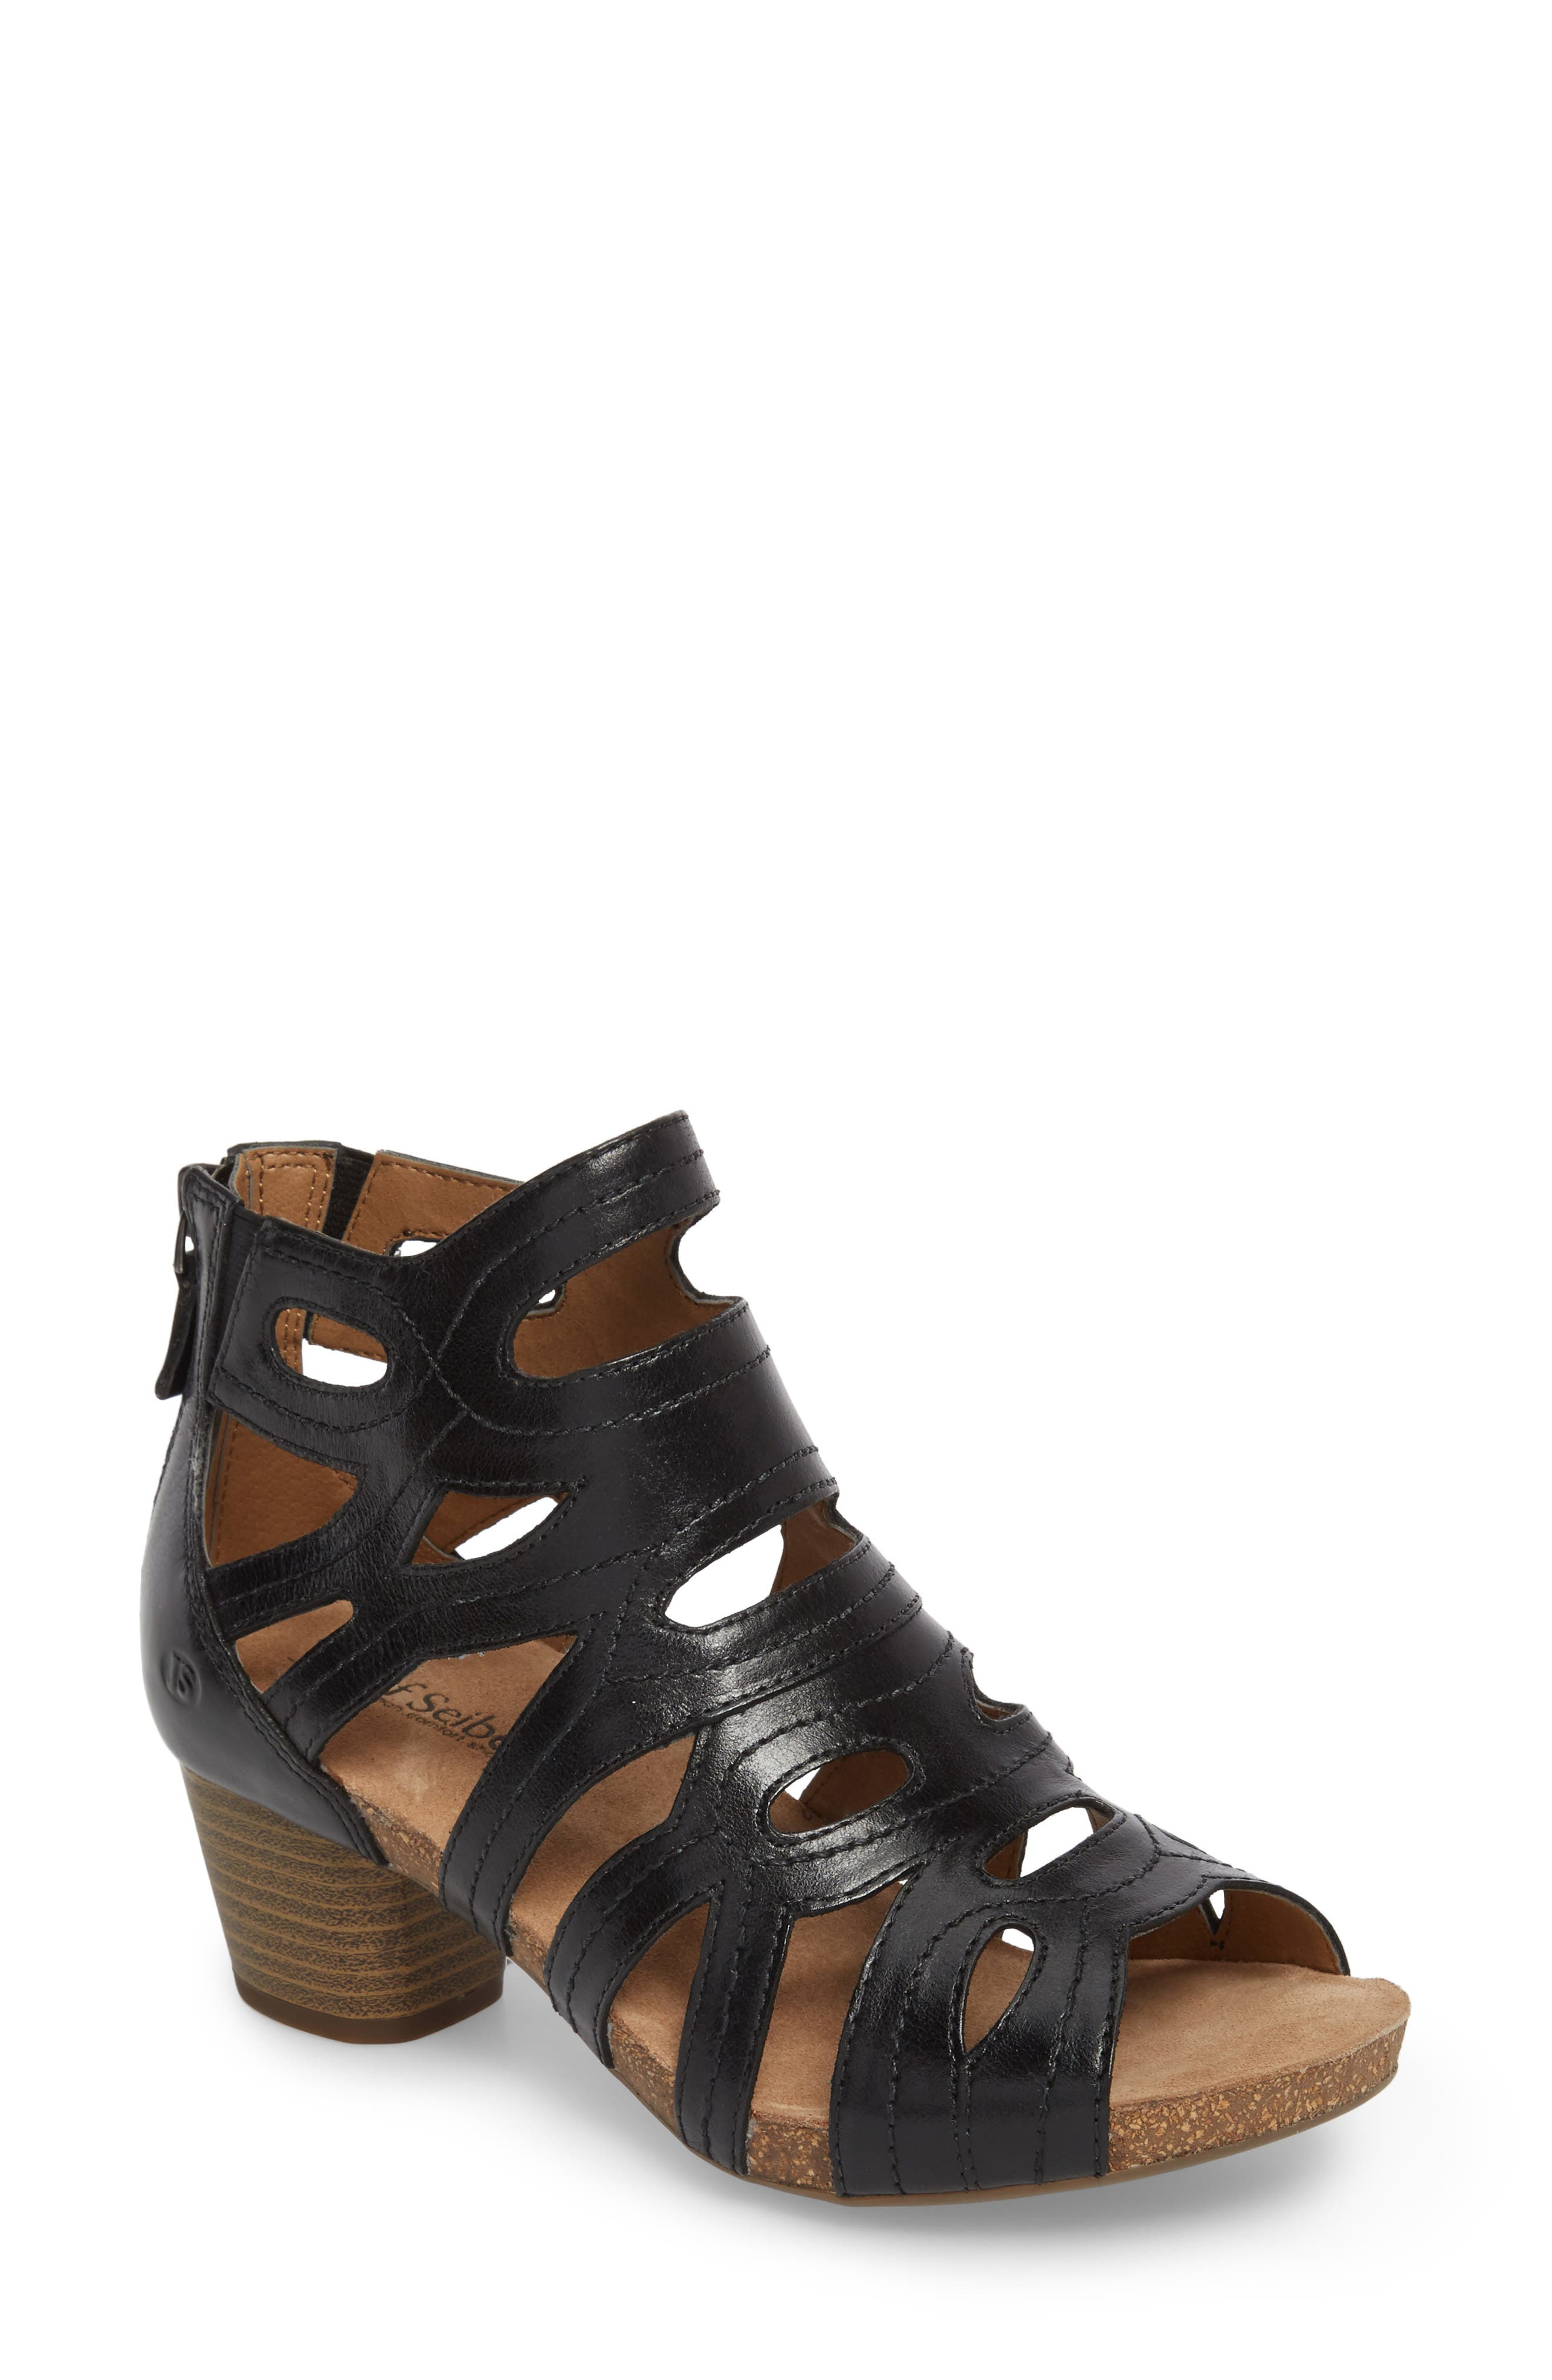 Alternate Image 1 Selected - Josef Seibel Rose 21 Gladiator Sandal (Women)